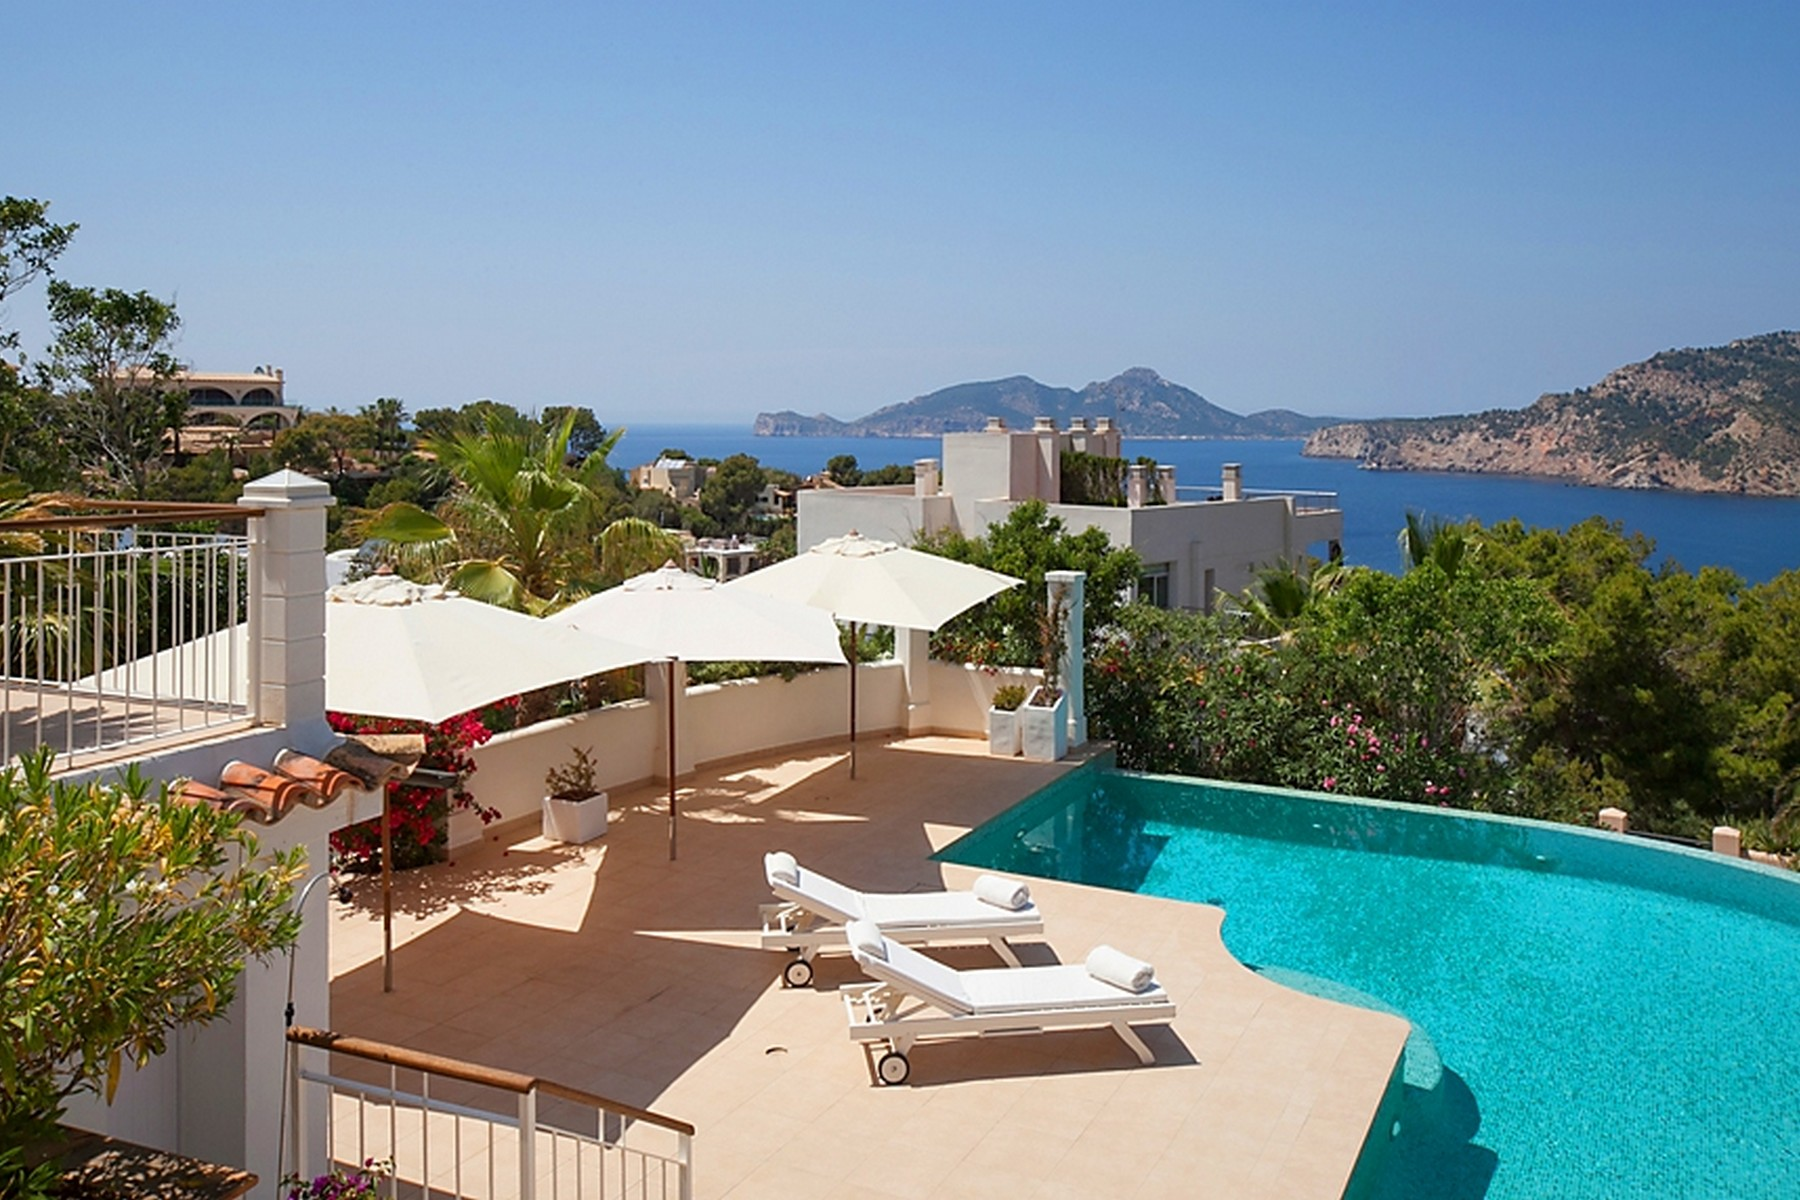 Single Family Home for Sale at Dream villa with fantastic views in Port Andratx Port Andratx, Mallorca 07157 Spain